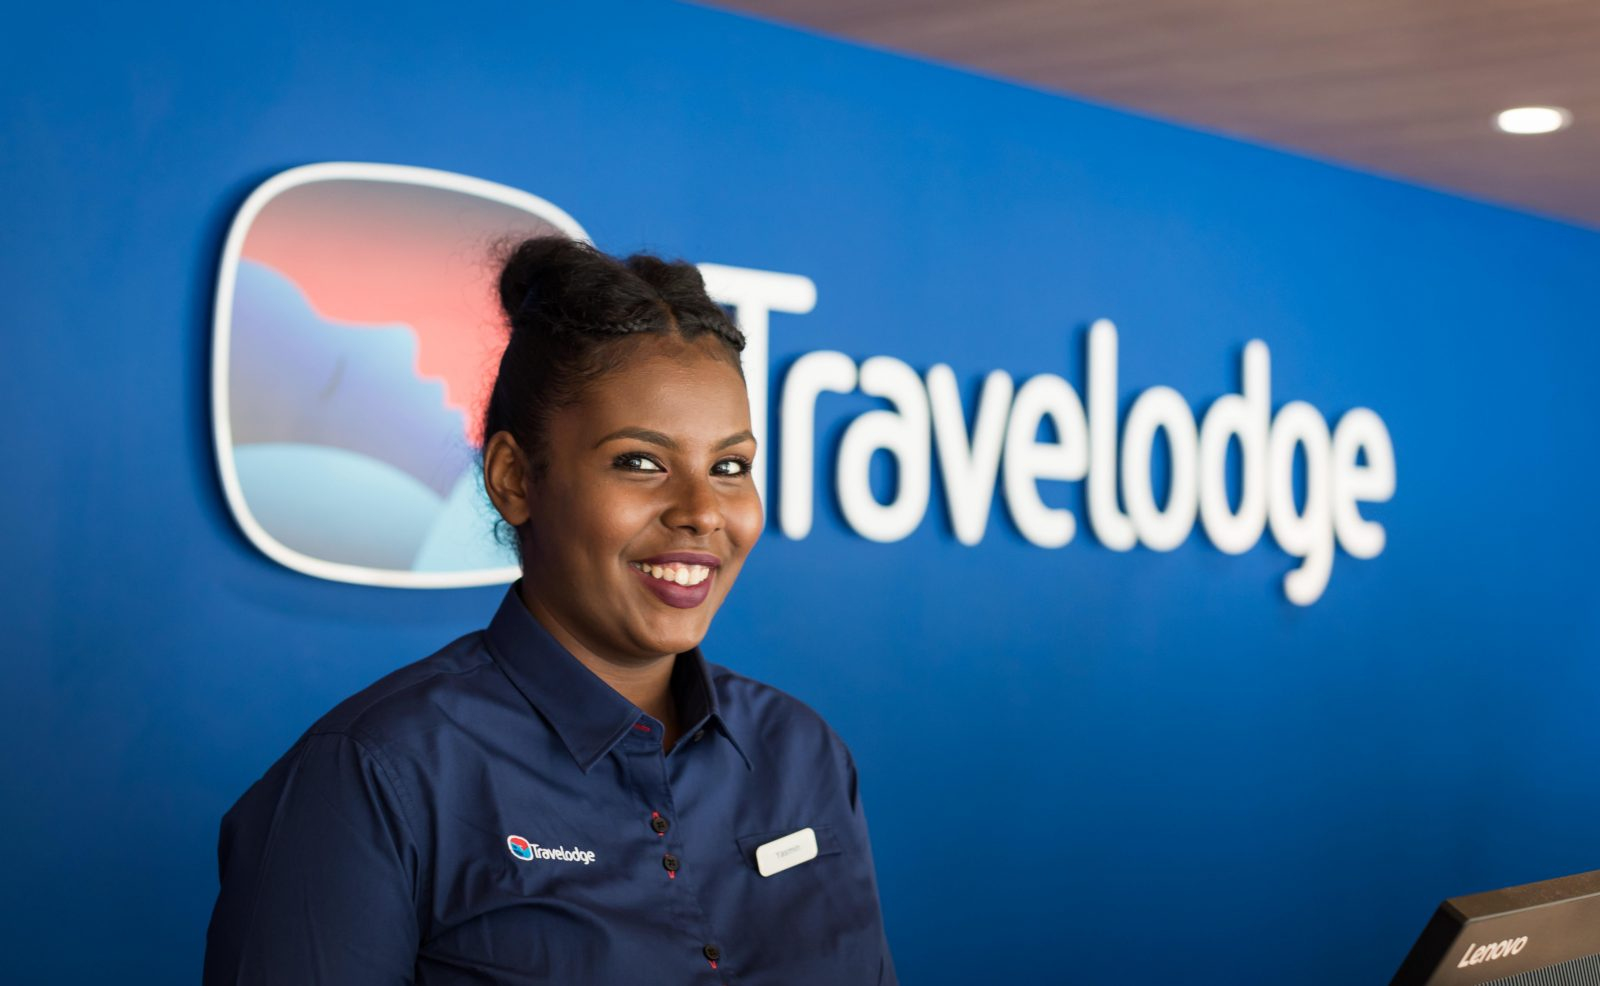 Travelodge helps unemployed parents return to work with a pledge of 1,500 UK jobs